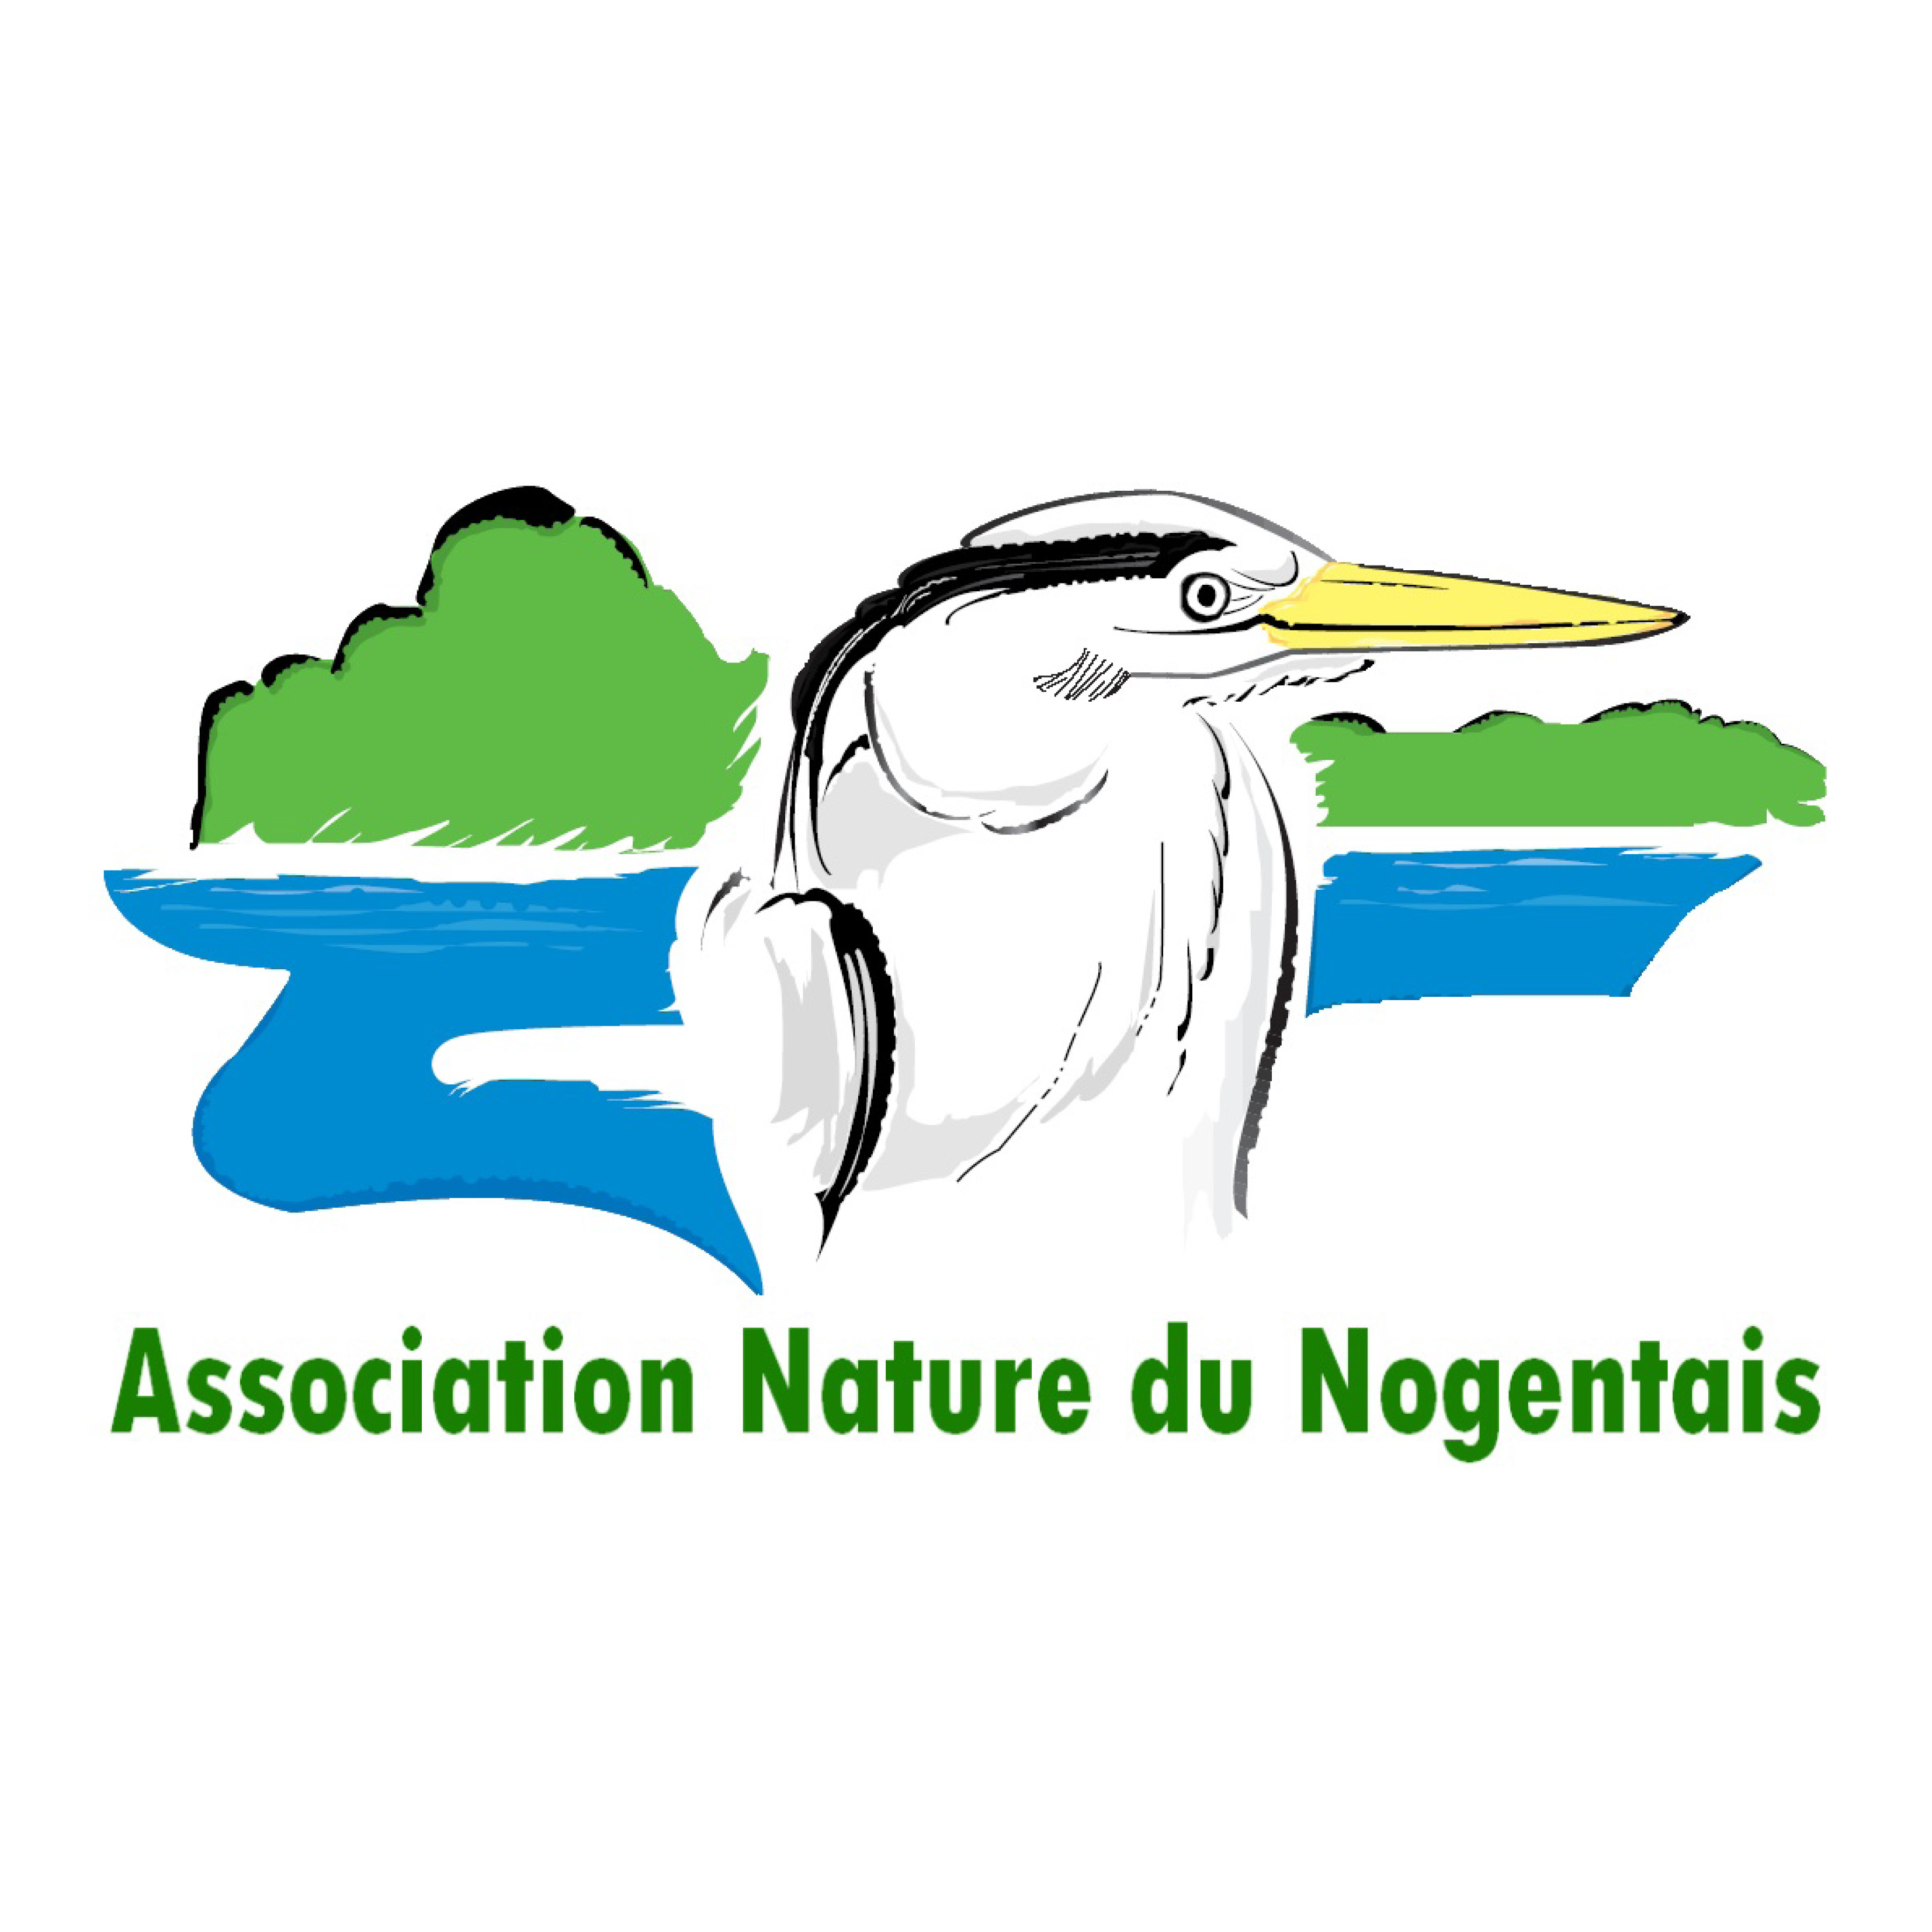 Association Nature du Nogentais (ANN)